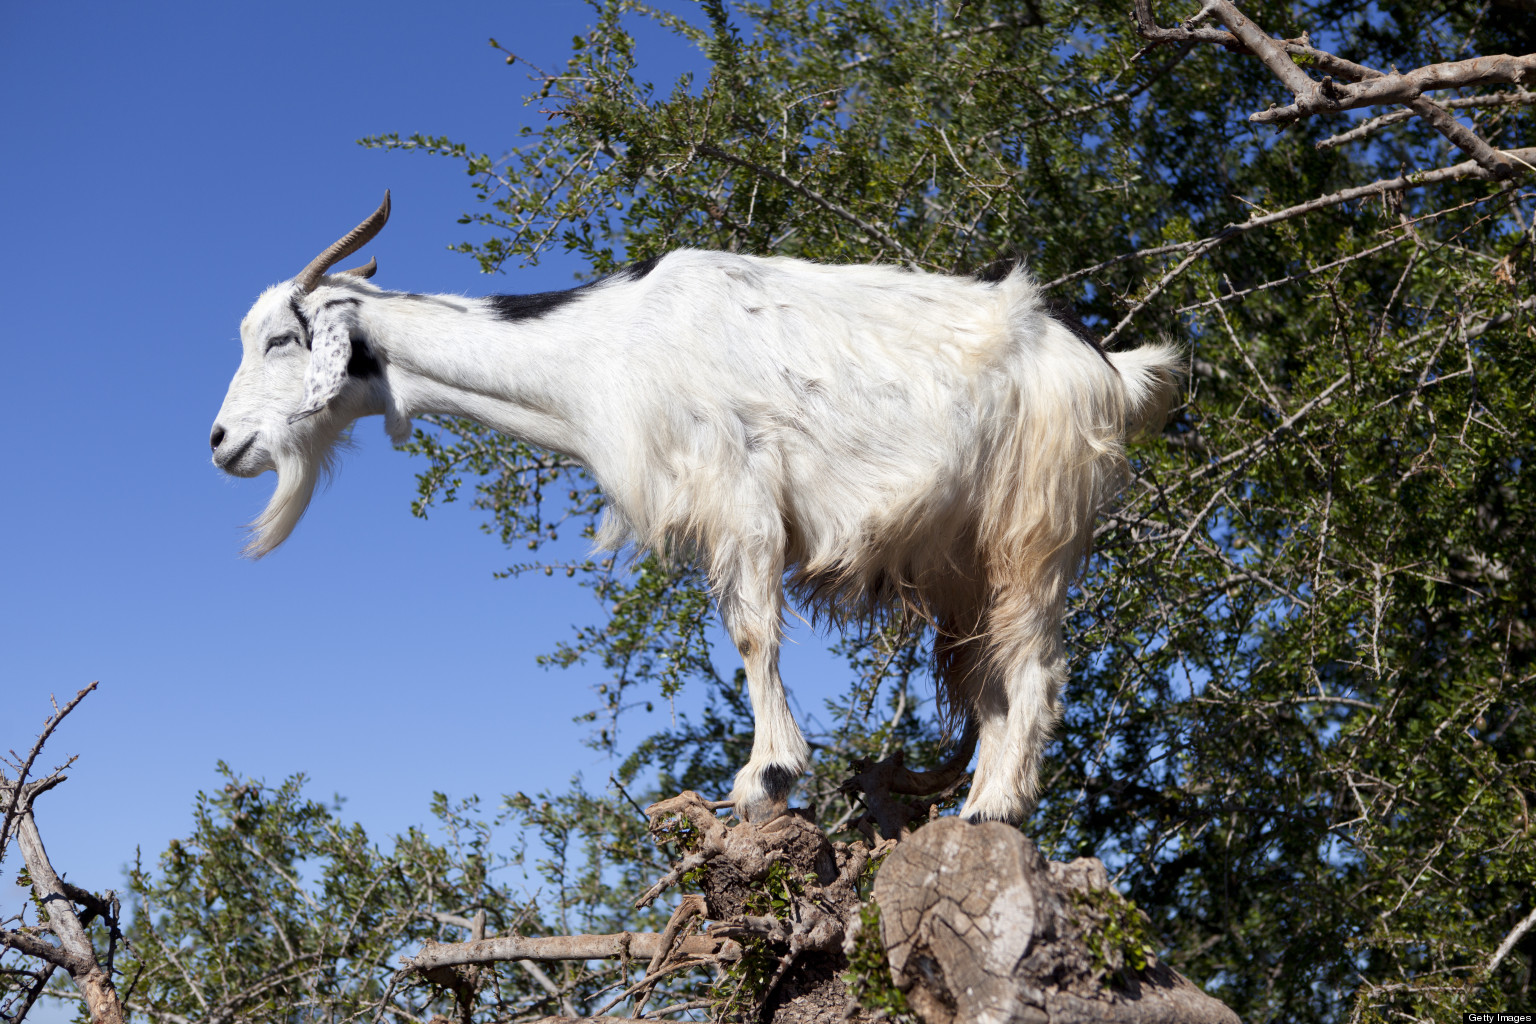 Decapitated Goat Chicago Headless On Golf Course Could Be Related To Wrigley Package